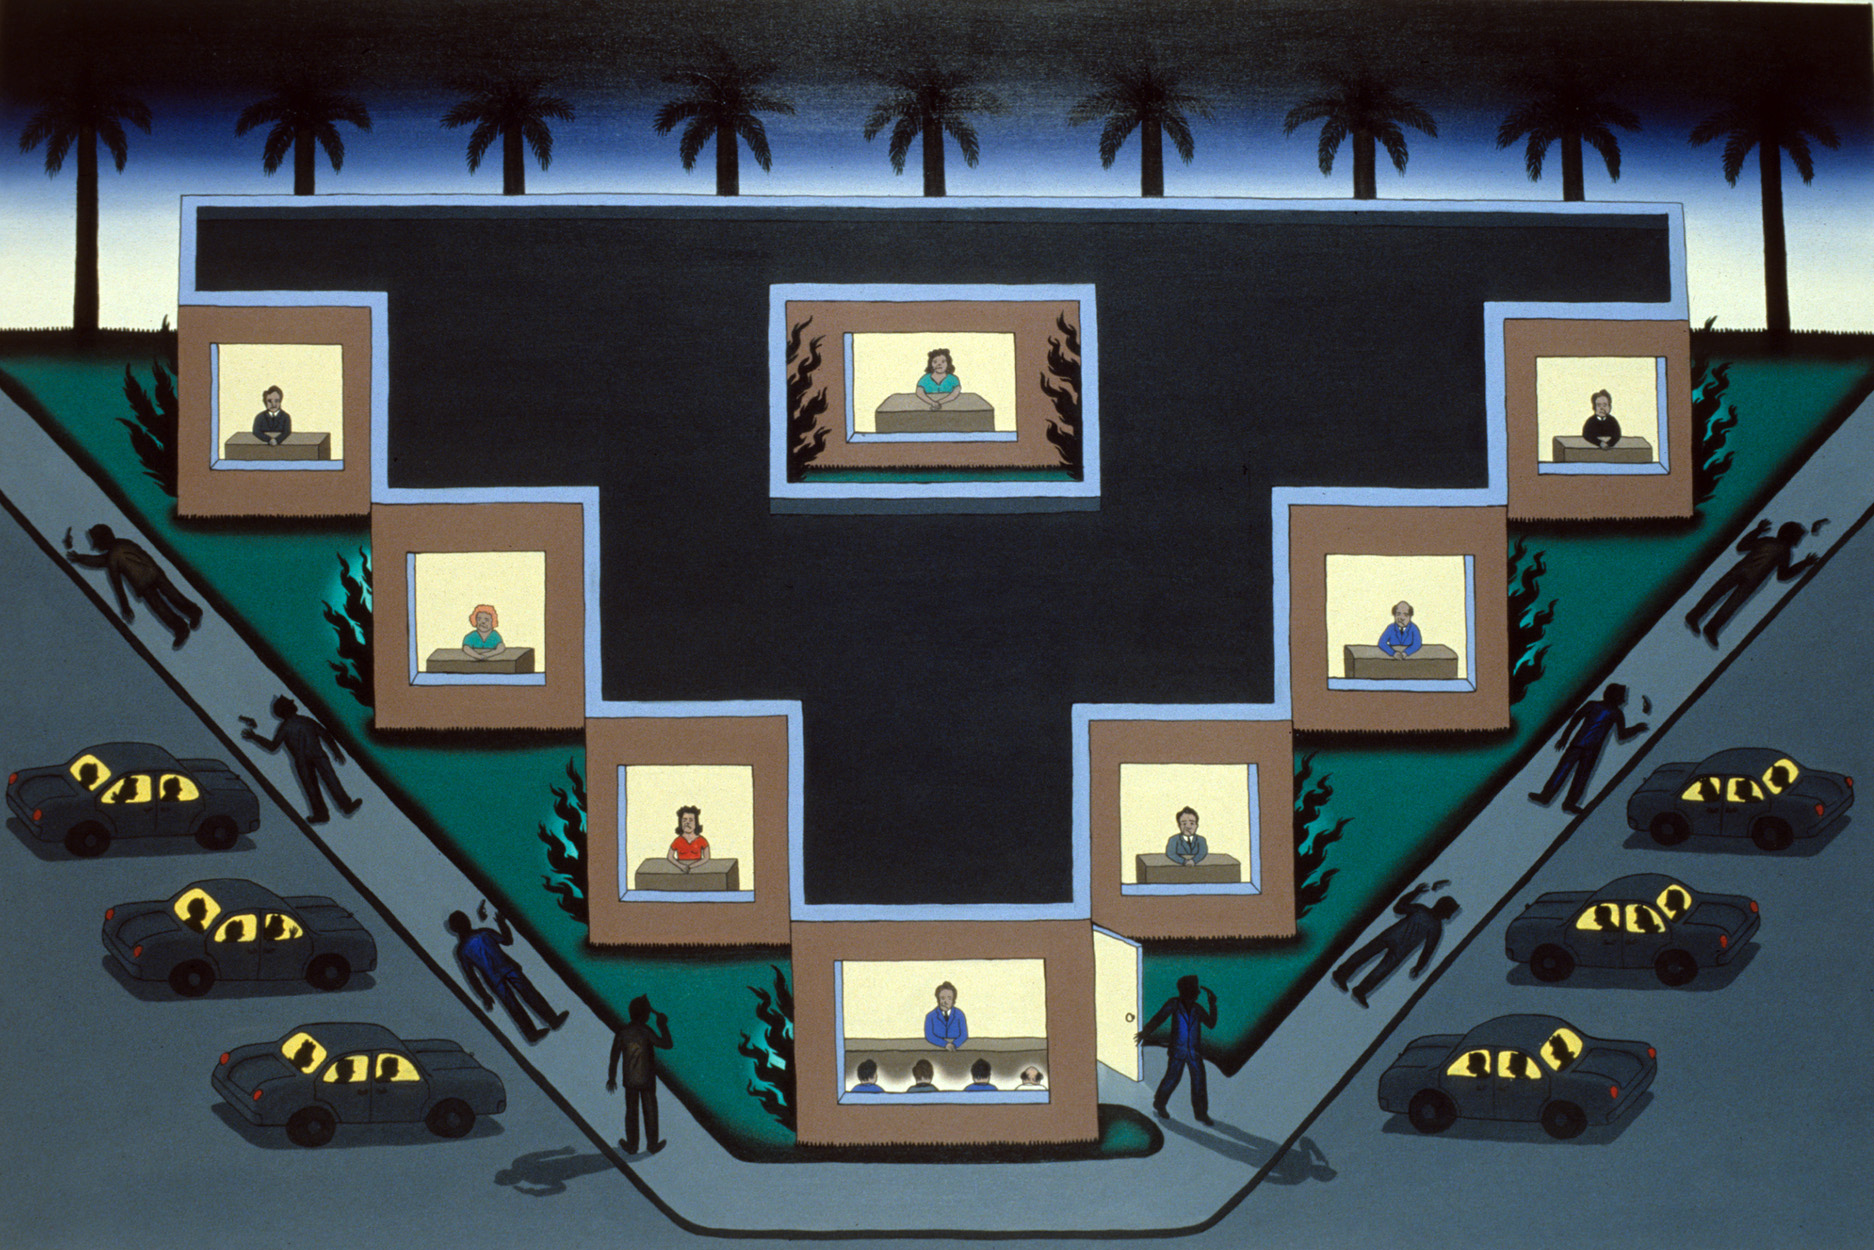 Roger Brown, <em>Citizens Killing Themselves After Having To Deal With the Ventura County Coastal Planning Commission (if you're dreaming of California it doesn't matter where you played before California is a whole new game)</em>, 1988, oil on canvas, 48 x 72 in. © The School of the Art Institute of Chicago and the Brown family.